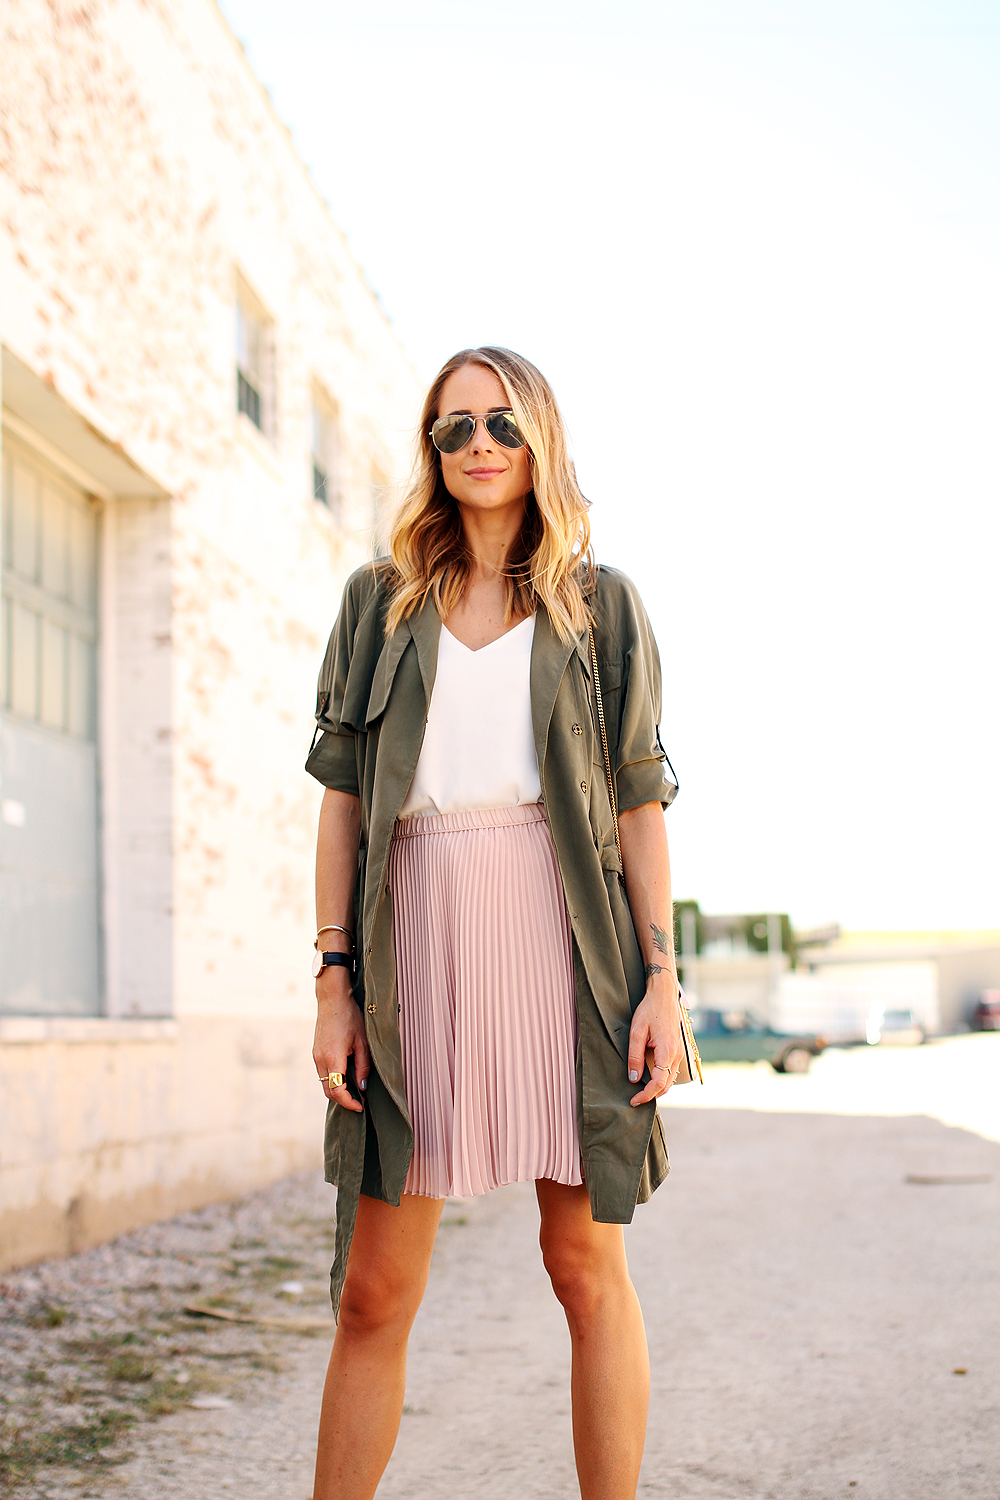 fashion-jackson-banana-republic-blush-pleated-skirt-banana-republic-trench-dress-rayban-silver-aviator-sunglasses